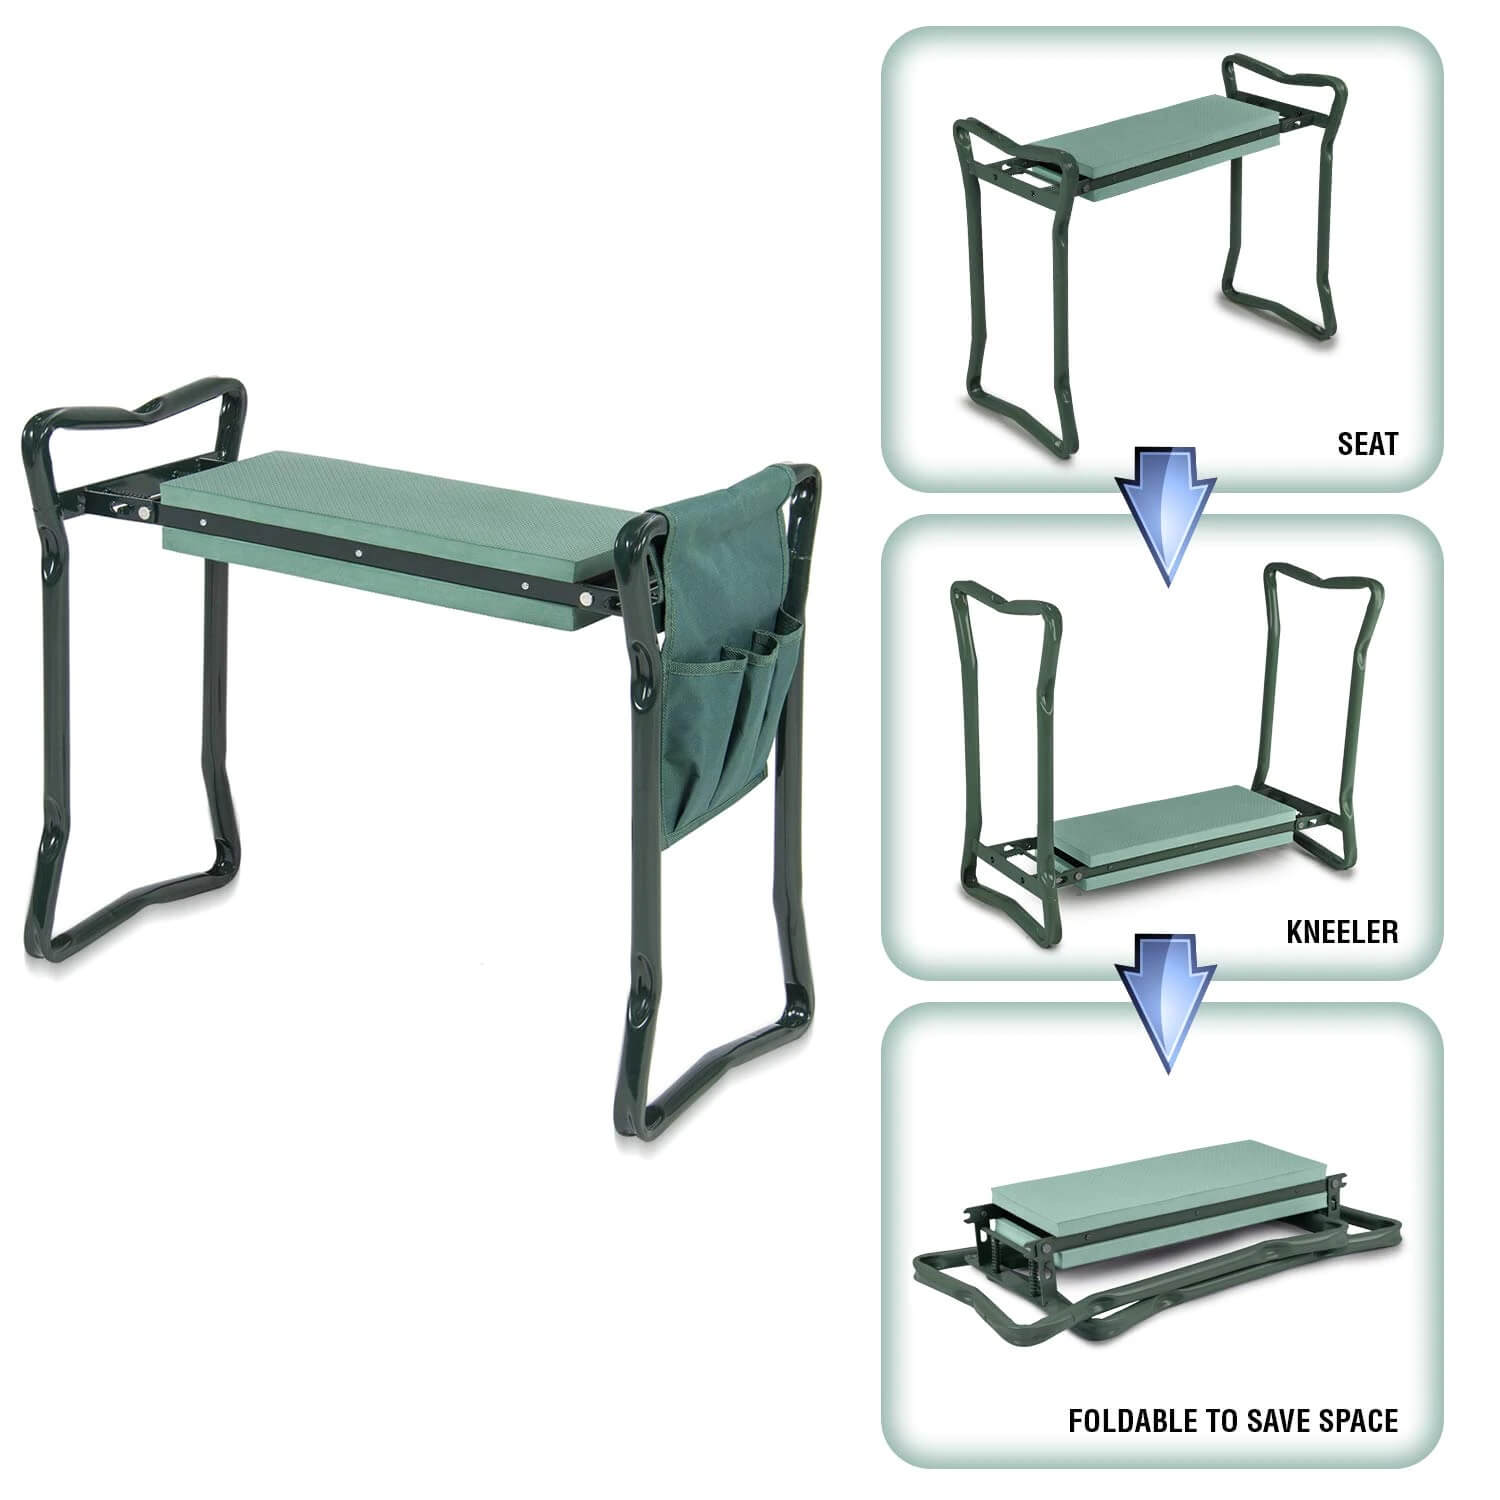 Garden-Kneeler-Foldable-design